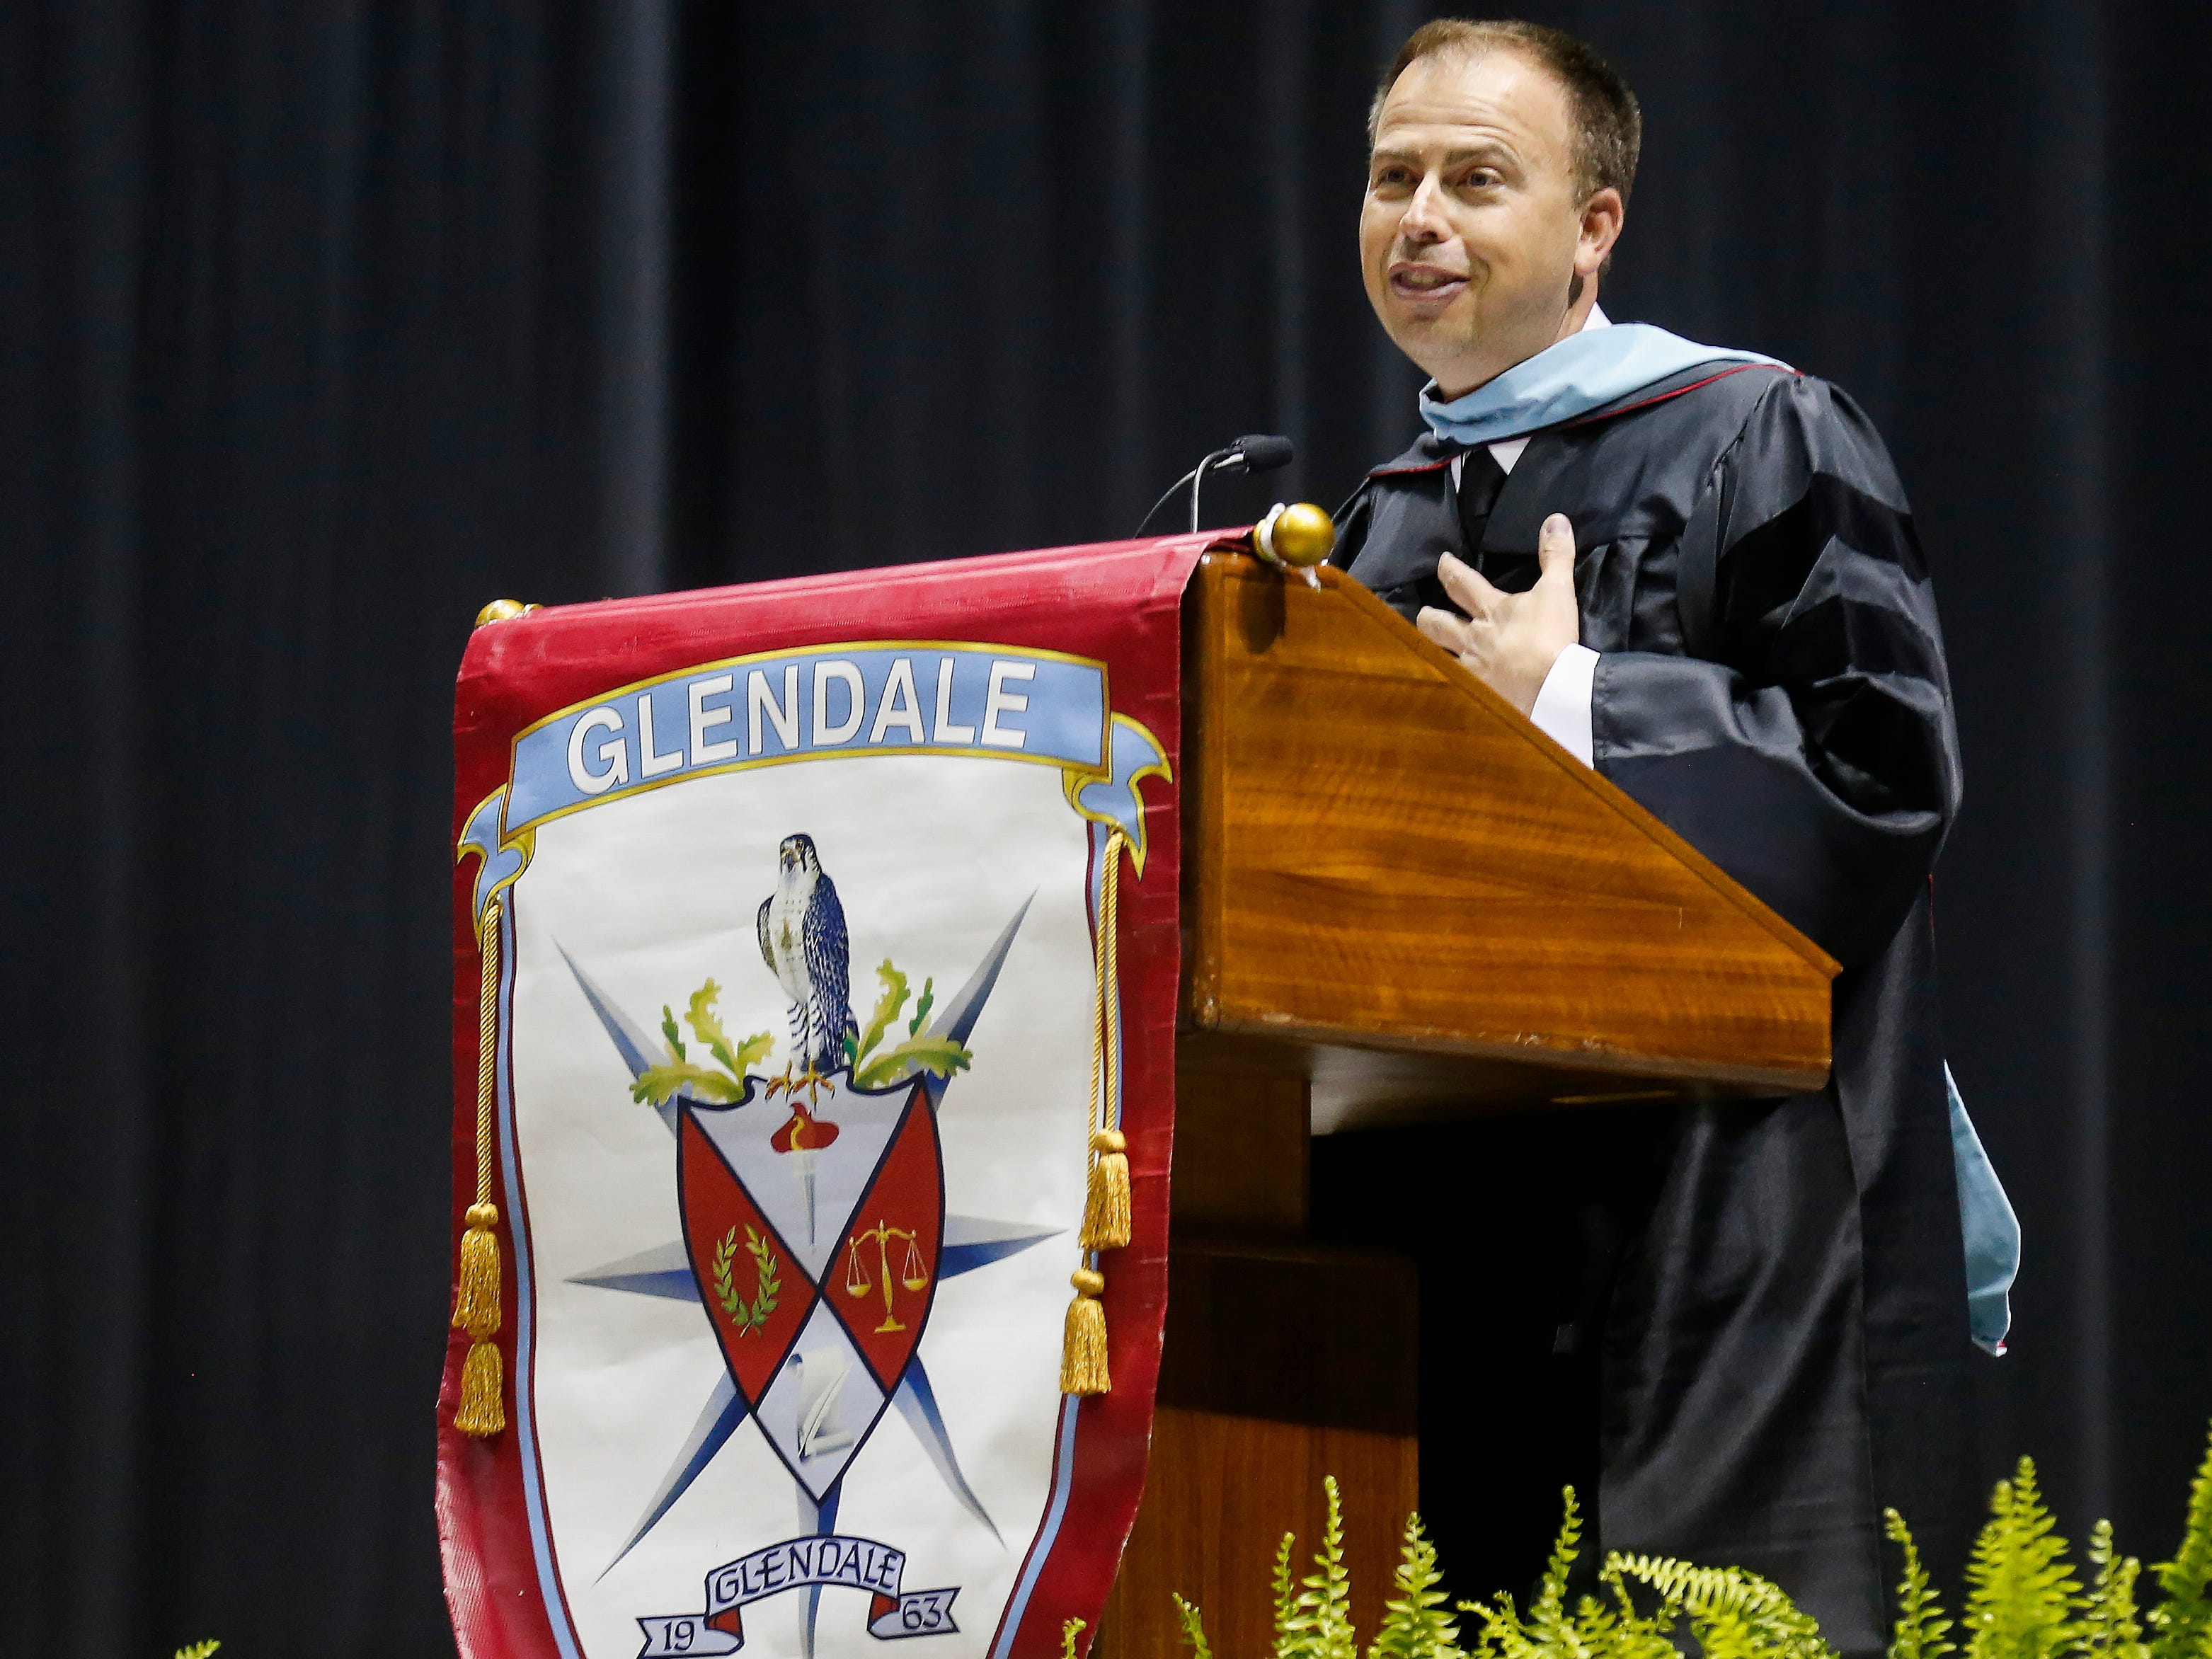 Superintendent John Jungmann speaks during Glendale High School's Commencement Ceremony at JQH Arena on Thursday, May 9, 2019.